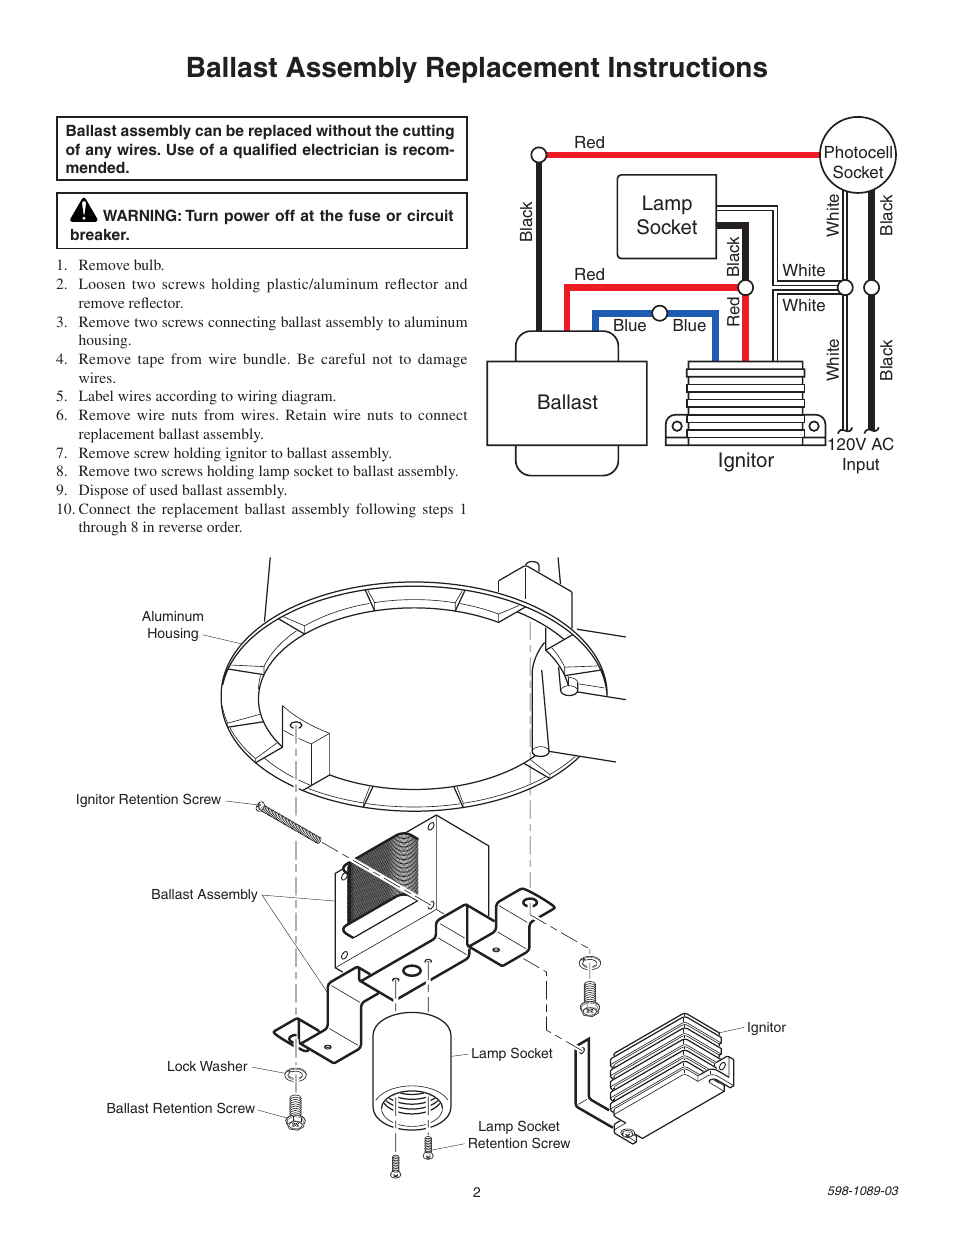 Ballast assembly replacement instructions, Lamp socket, Ballast ...